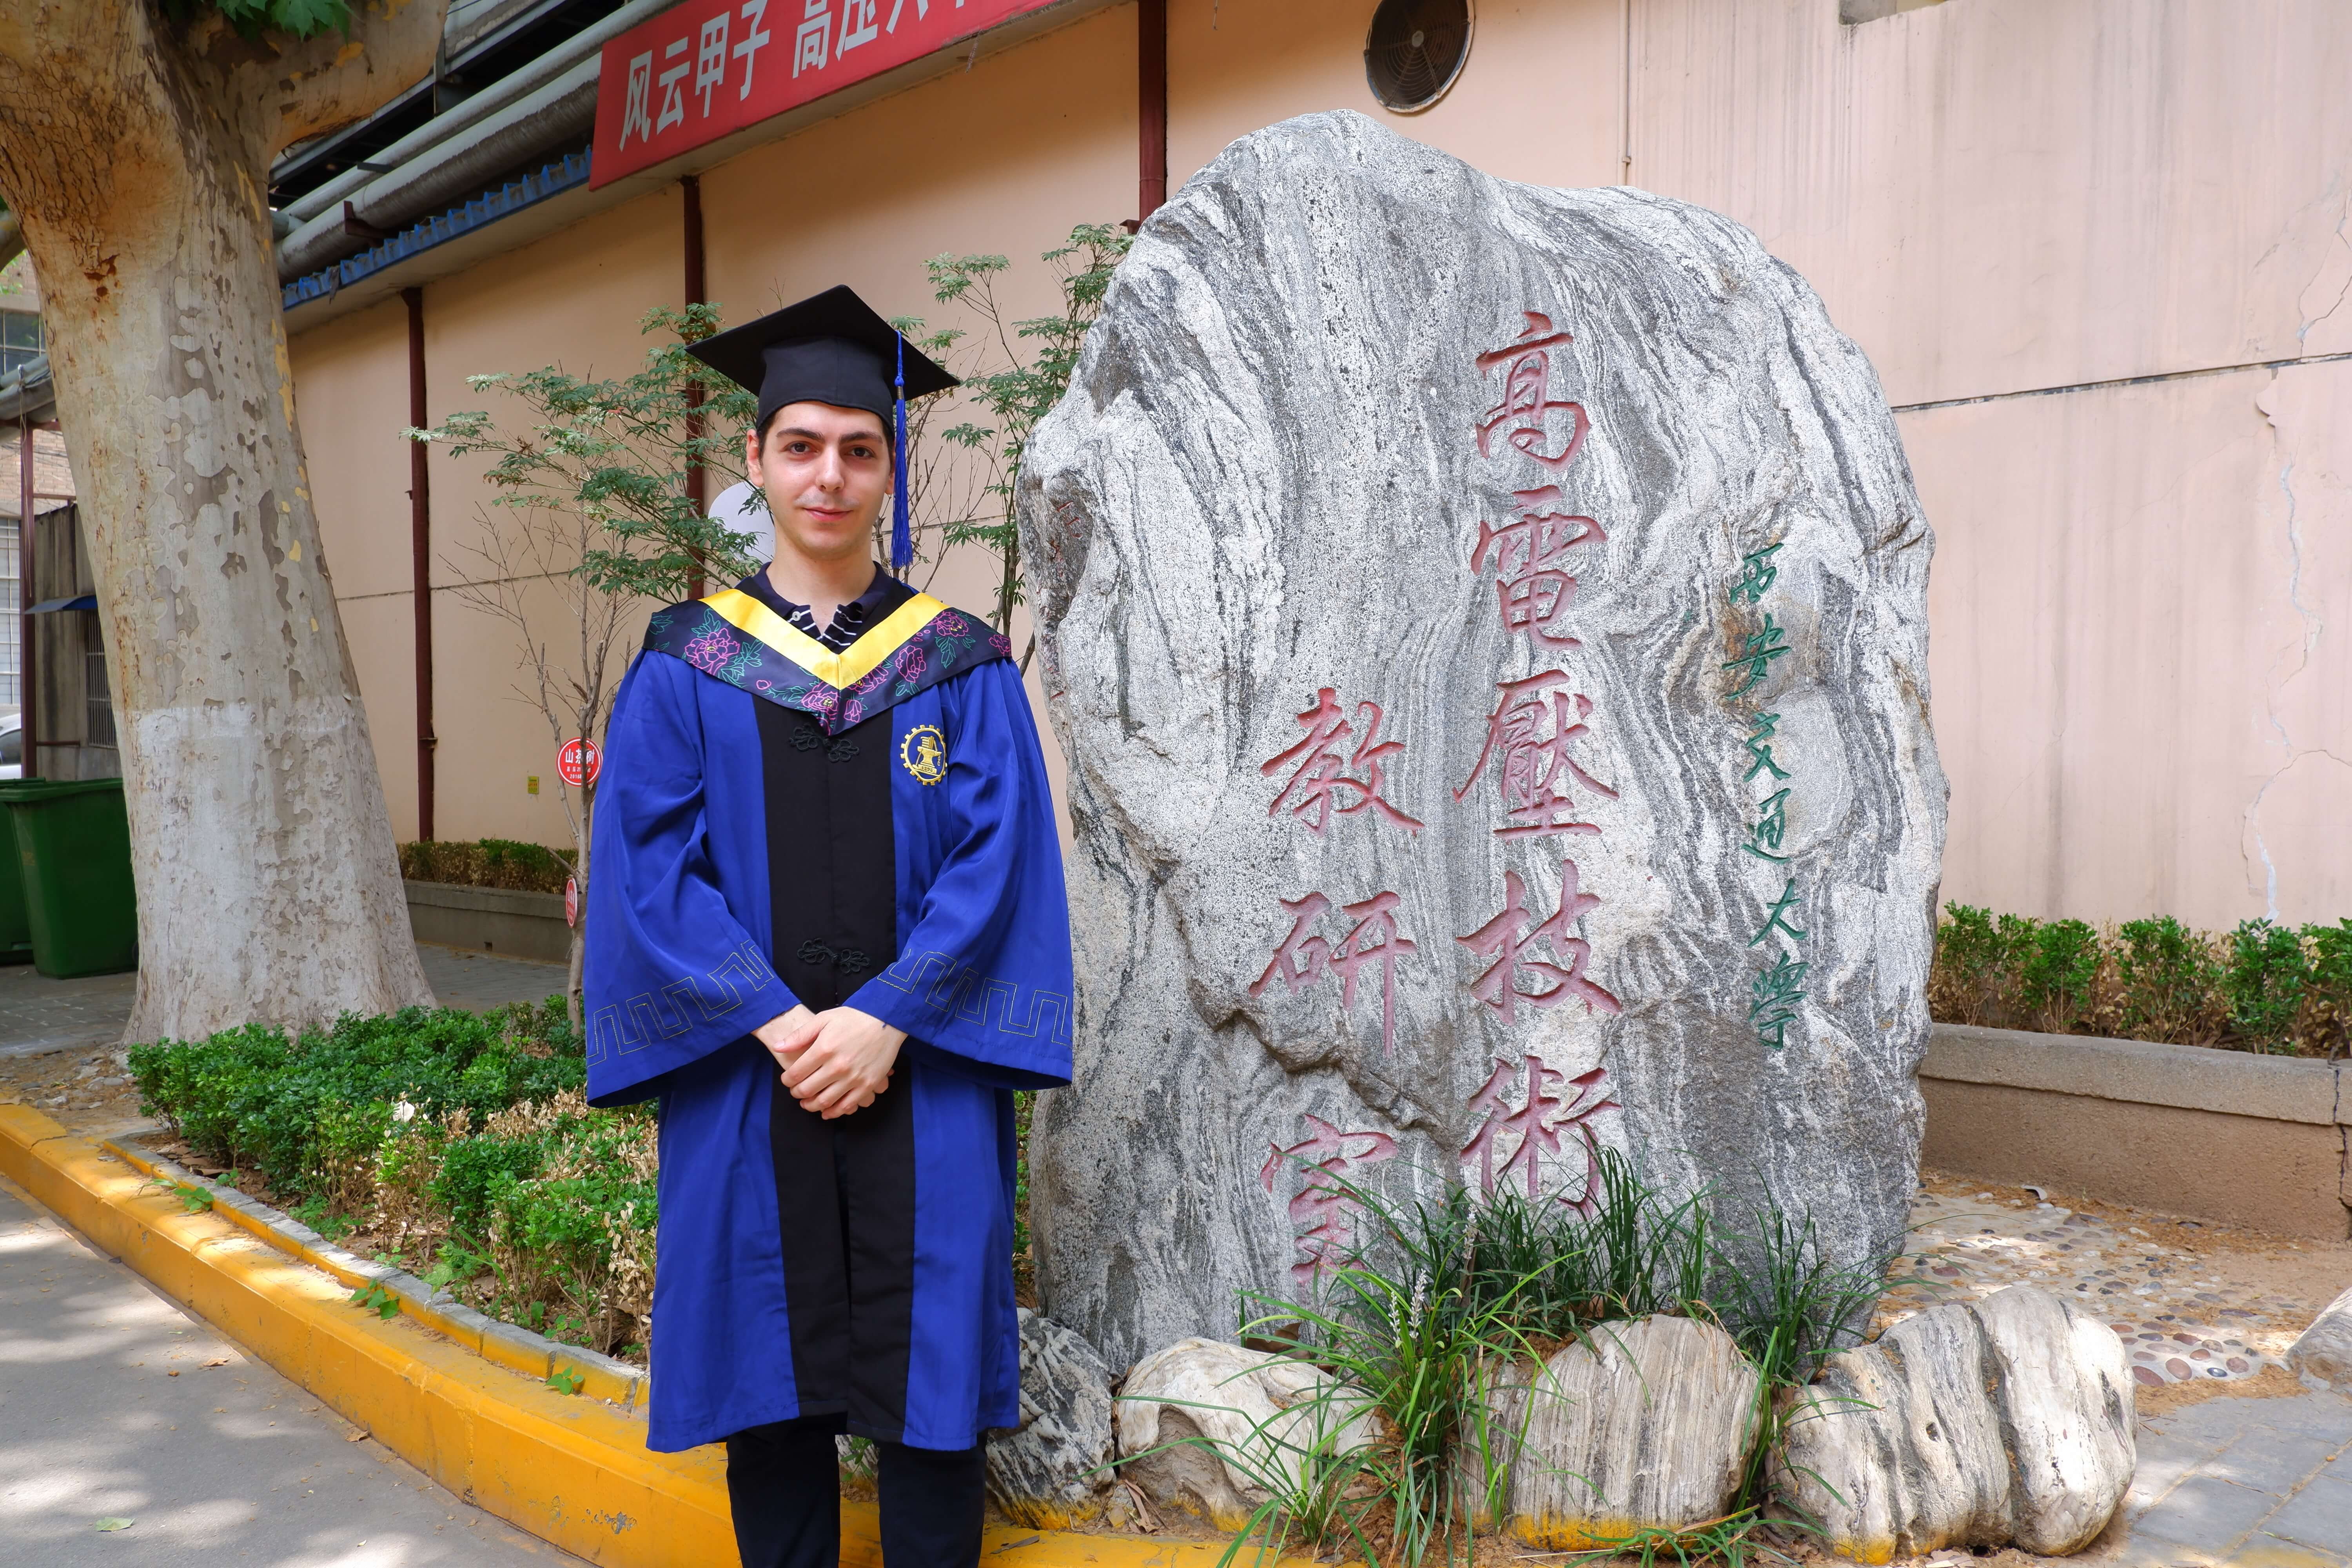 Lost research, hanging future: A PhD student's plea to return to China